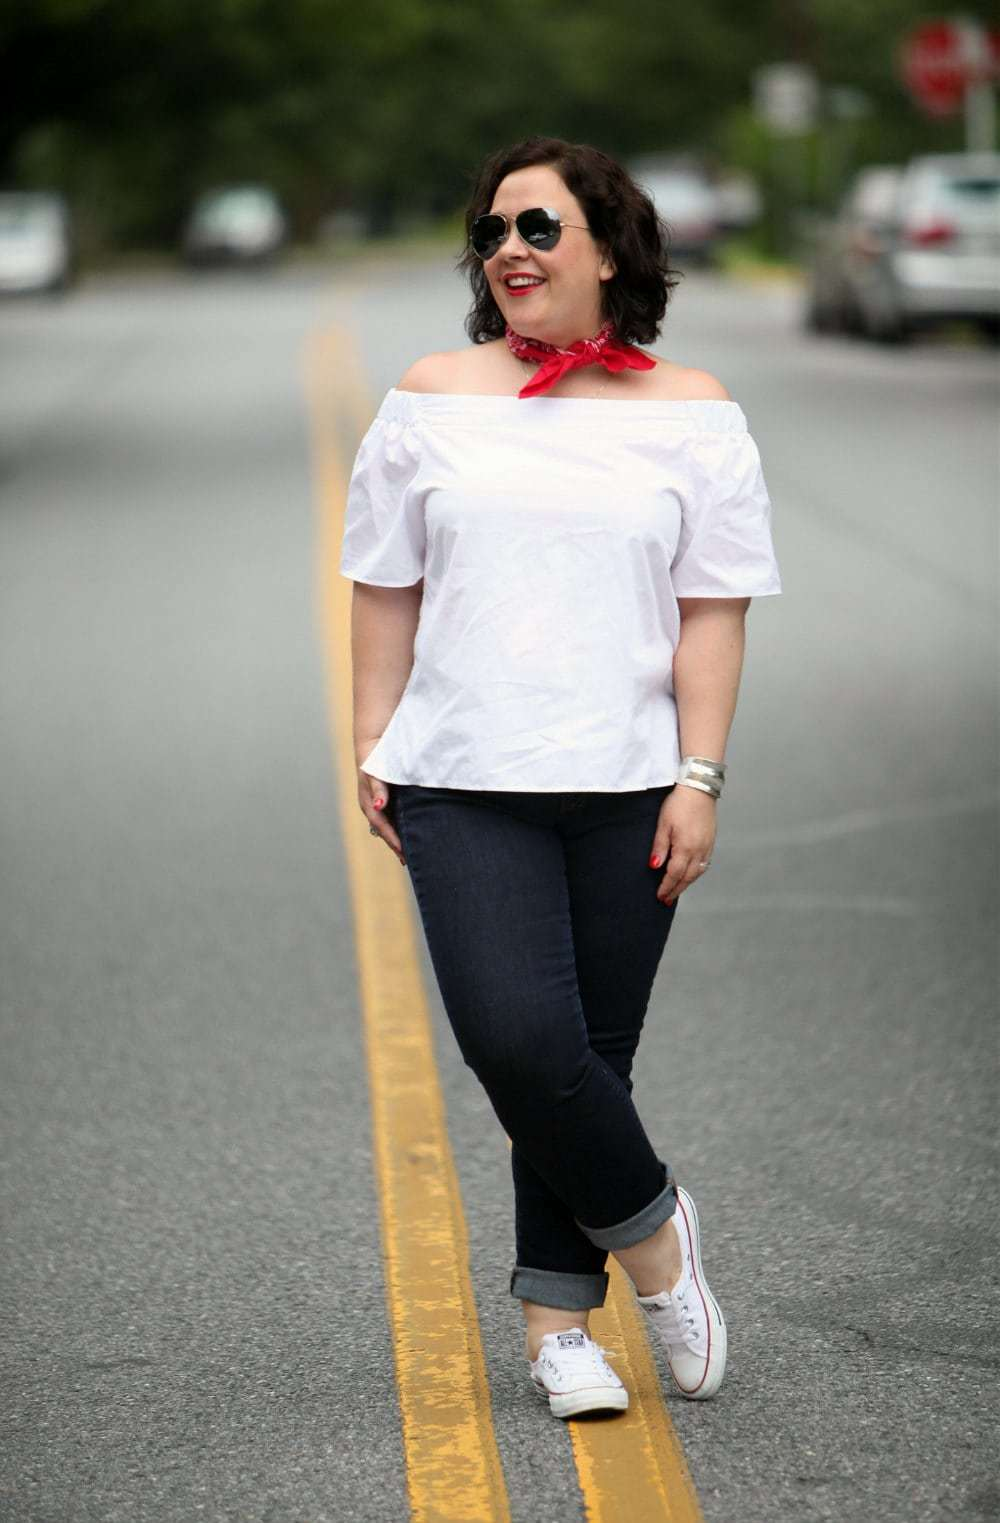 Wardrobe Oxygen Over 40 Fashion Blogger in ASOS Gap and Converse